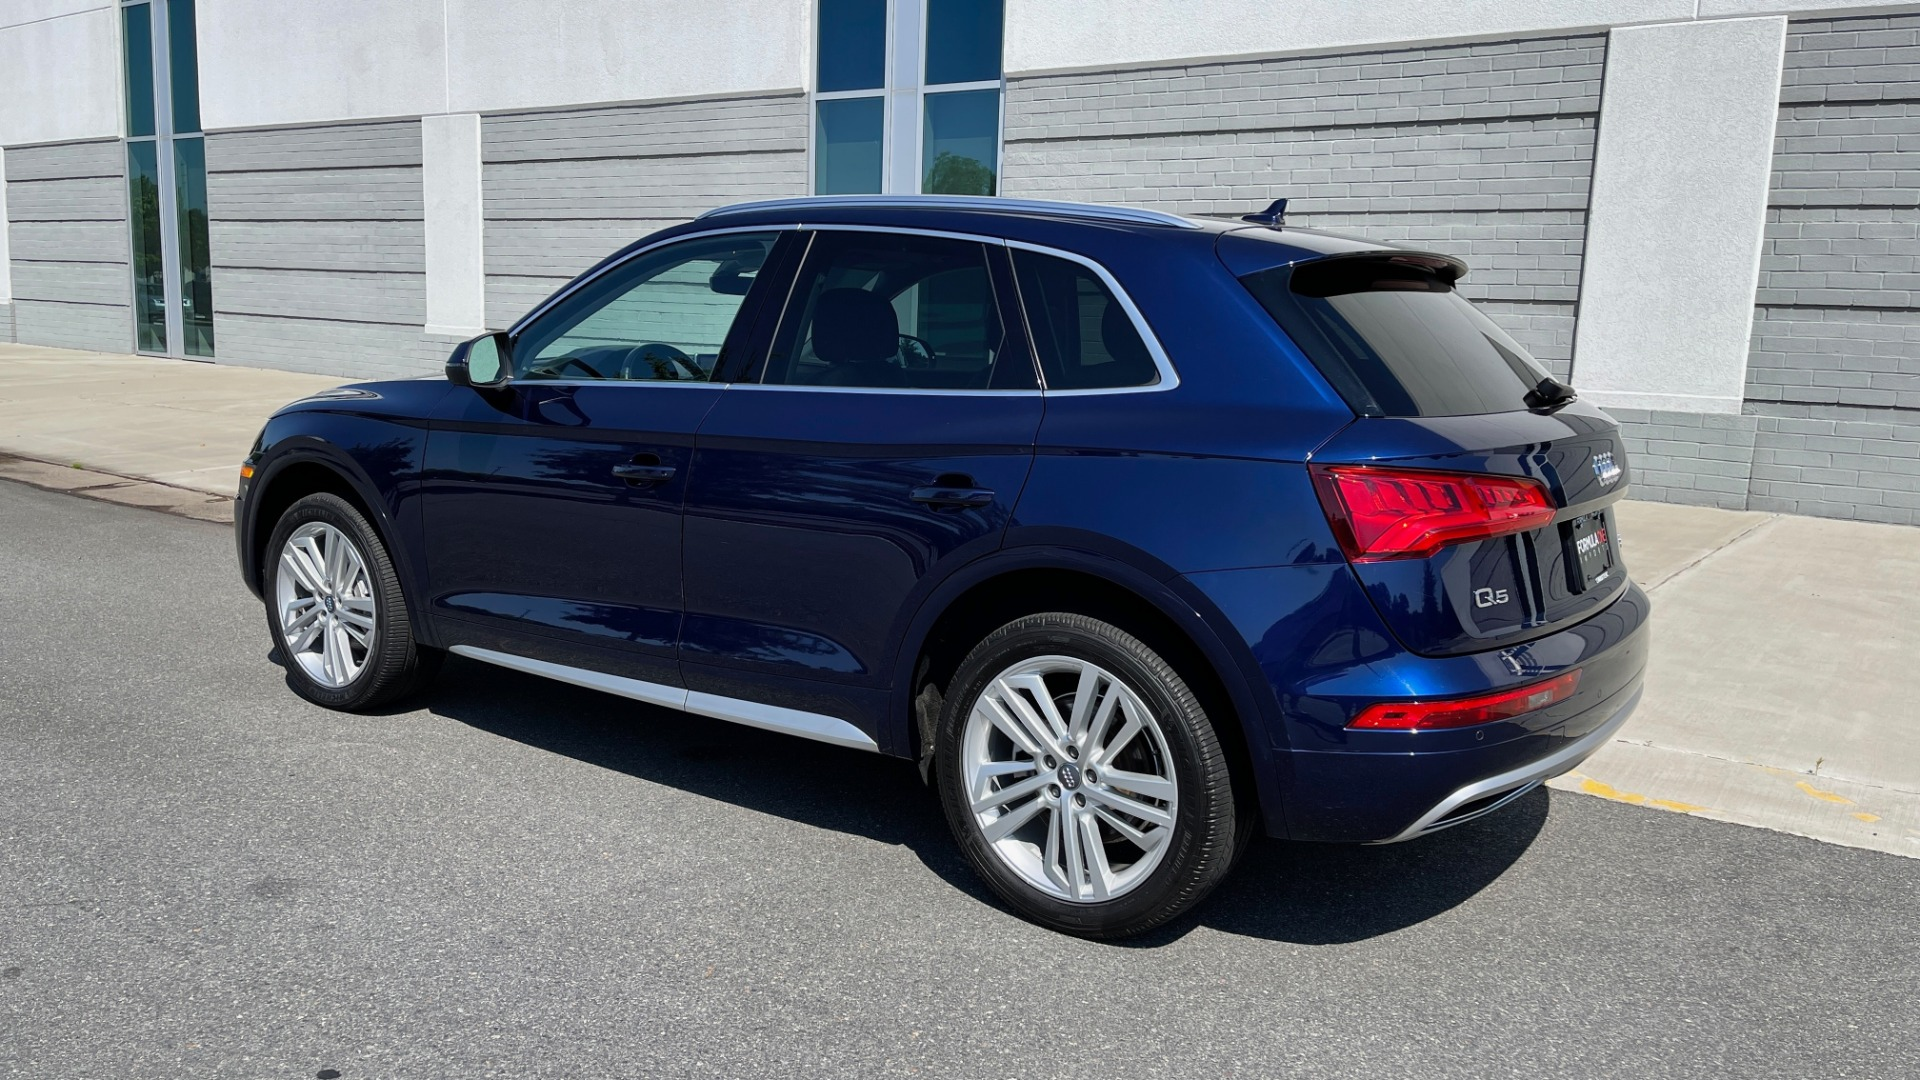 Used 2018 Audi Q5 PREMIUM PLUS / NAV / PANO-ROOF / PARK SYSTEM / REARVIEW for sale $33,695 at Formula Imports in Charlotte NC 28227 5